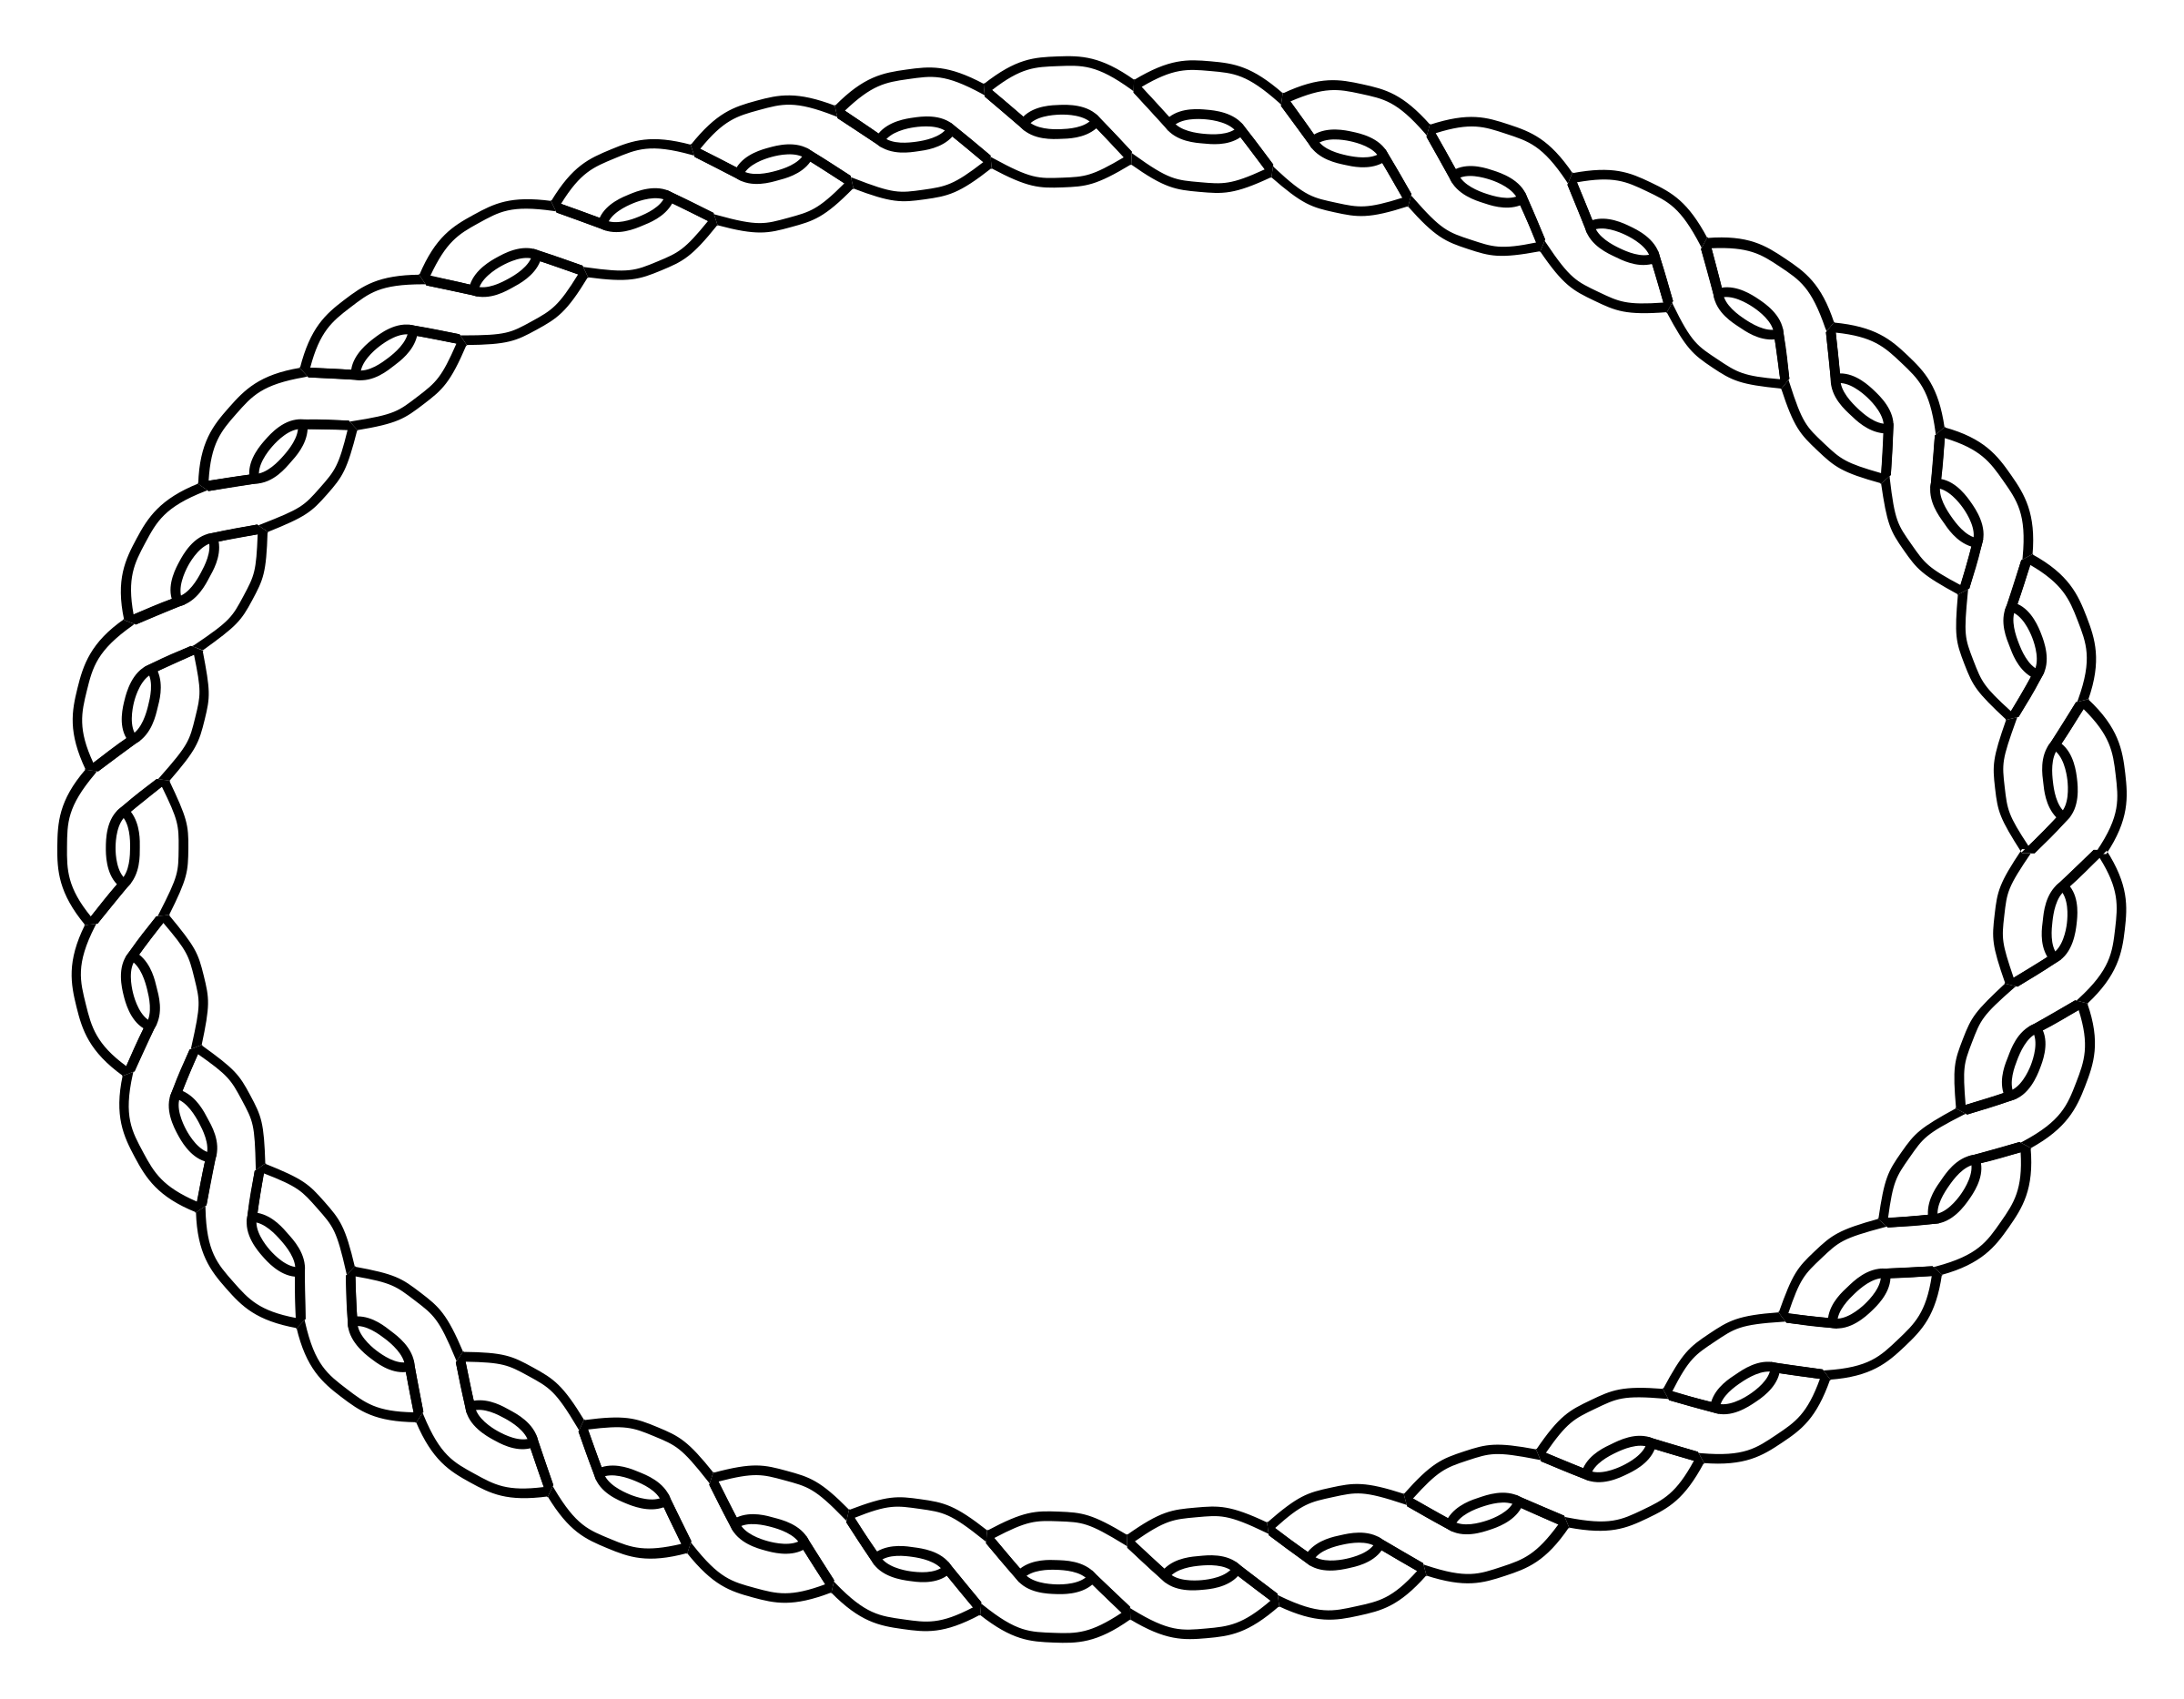 Oval borders png. Rope border icons free